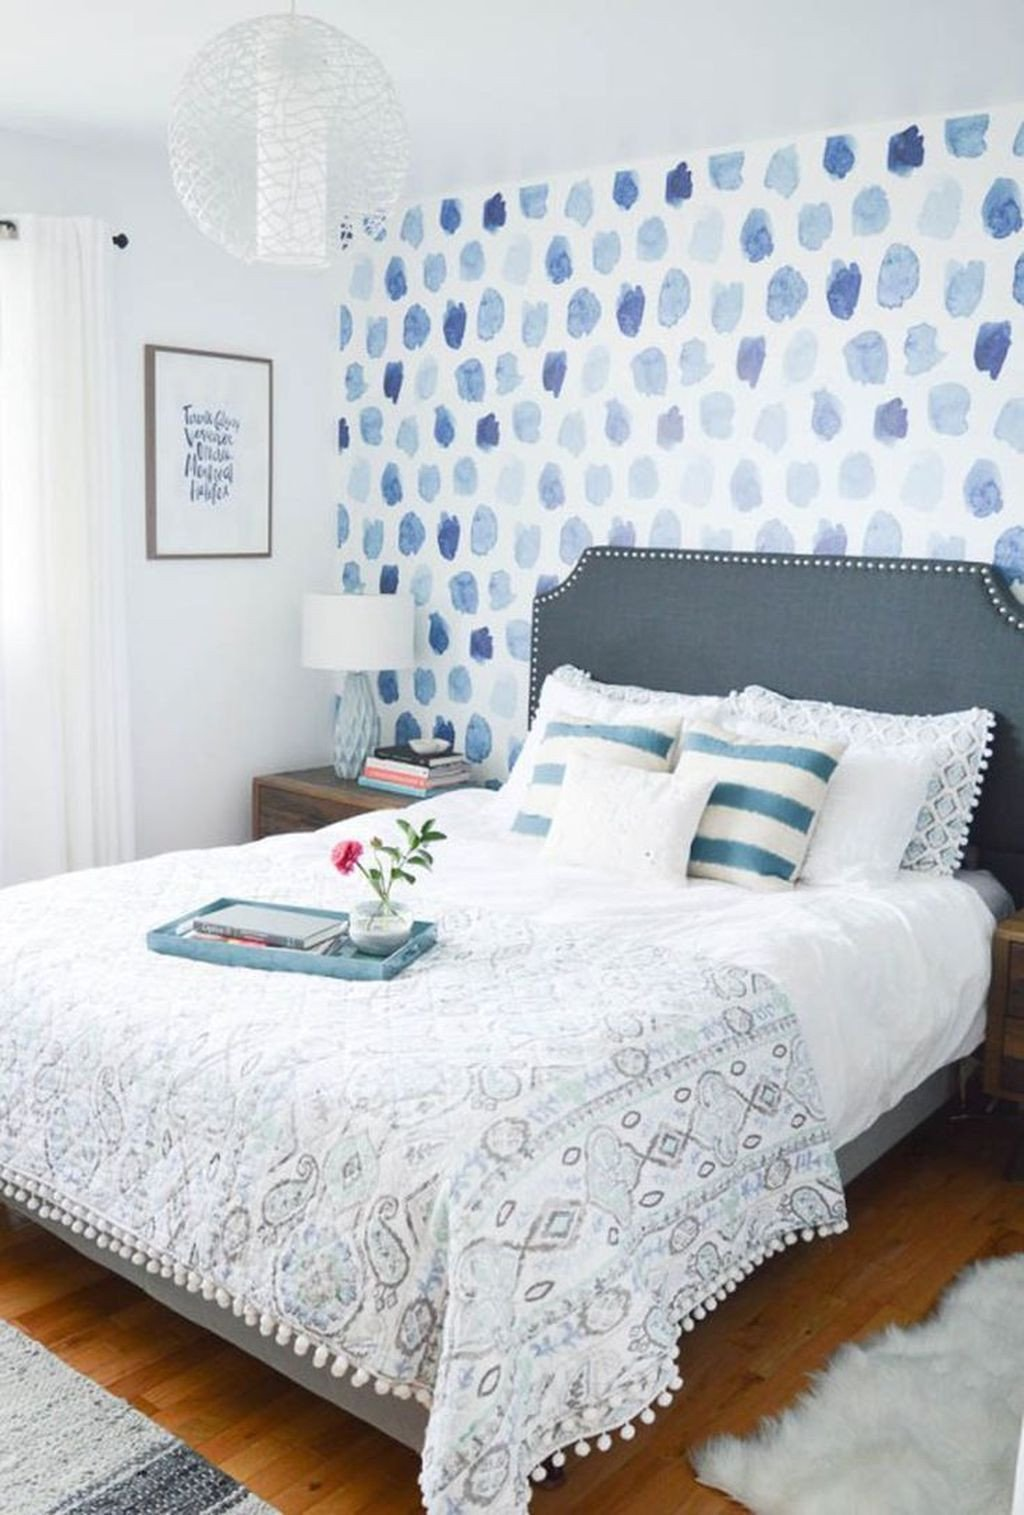 Blue and White Bedroom Ideas Inspirational 46 Elegant Blue themed Bedroom Ideas